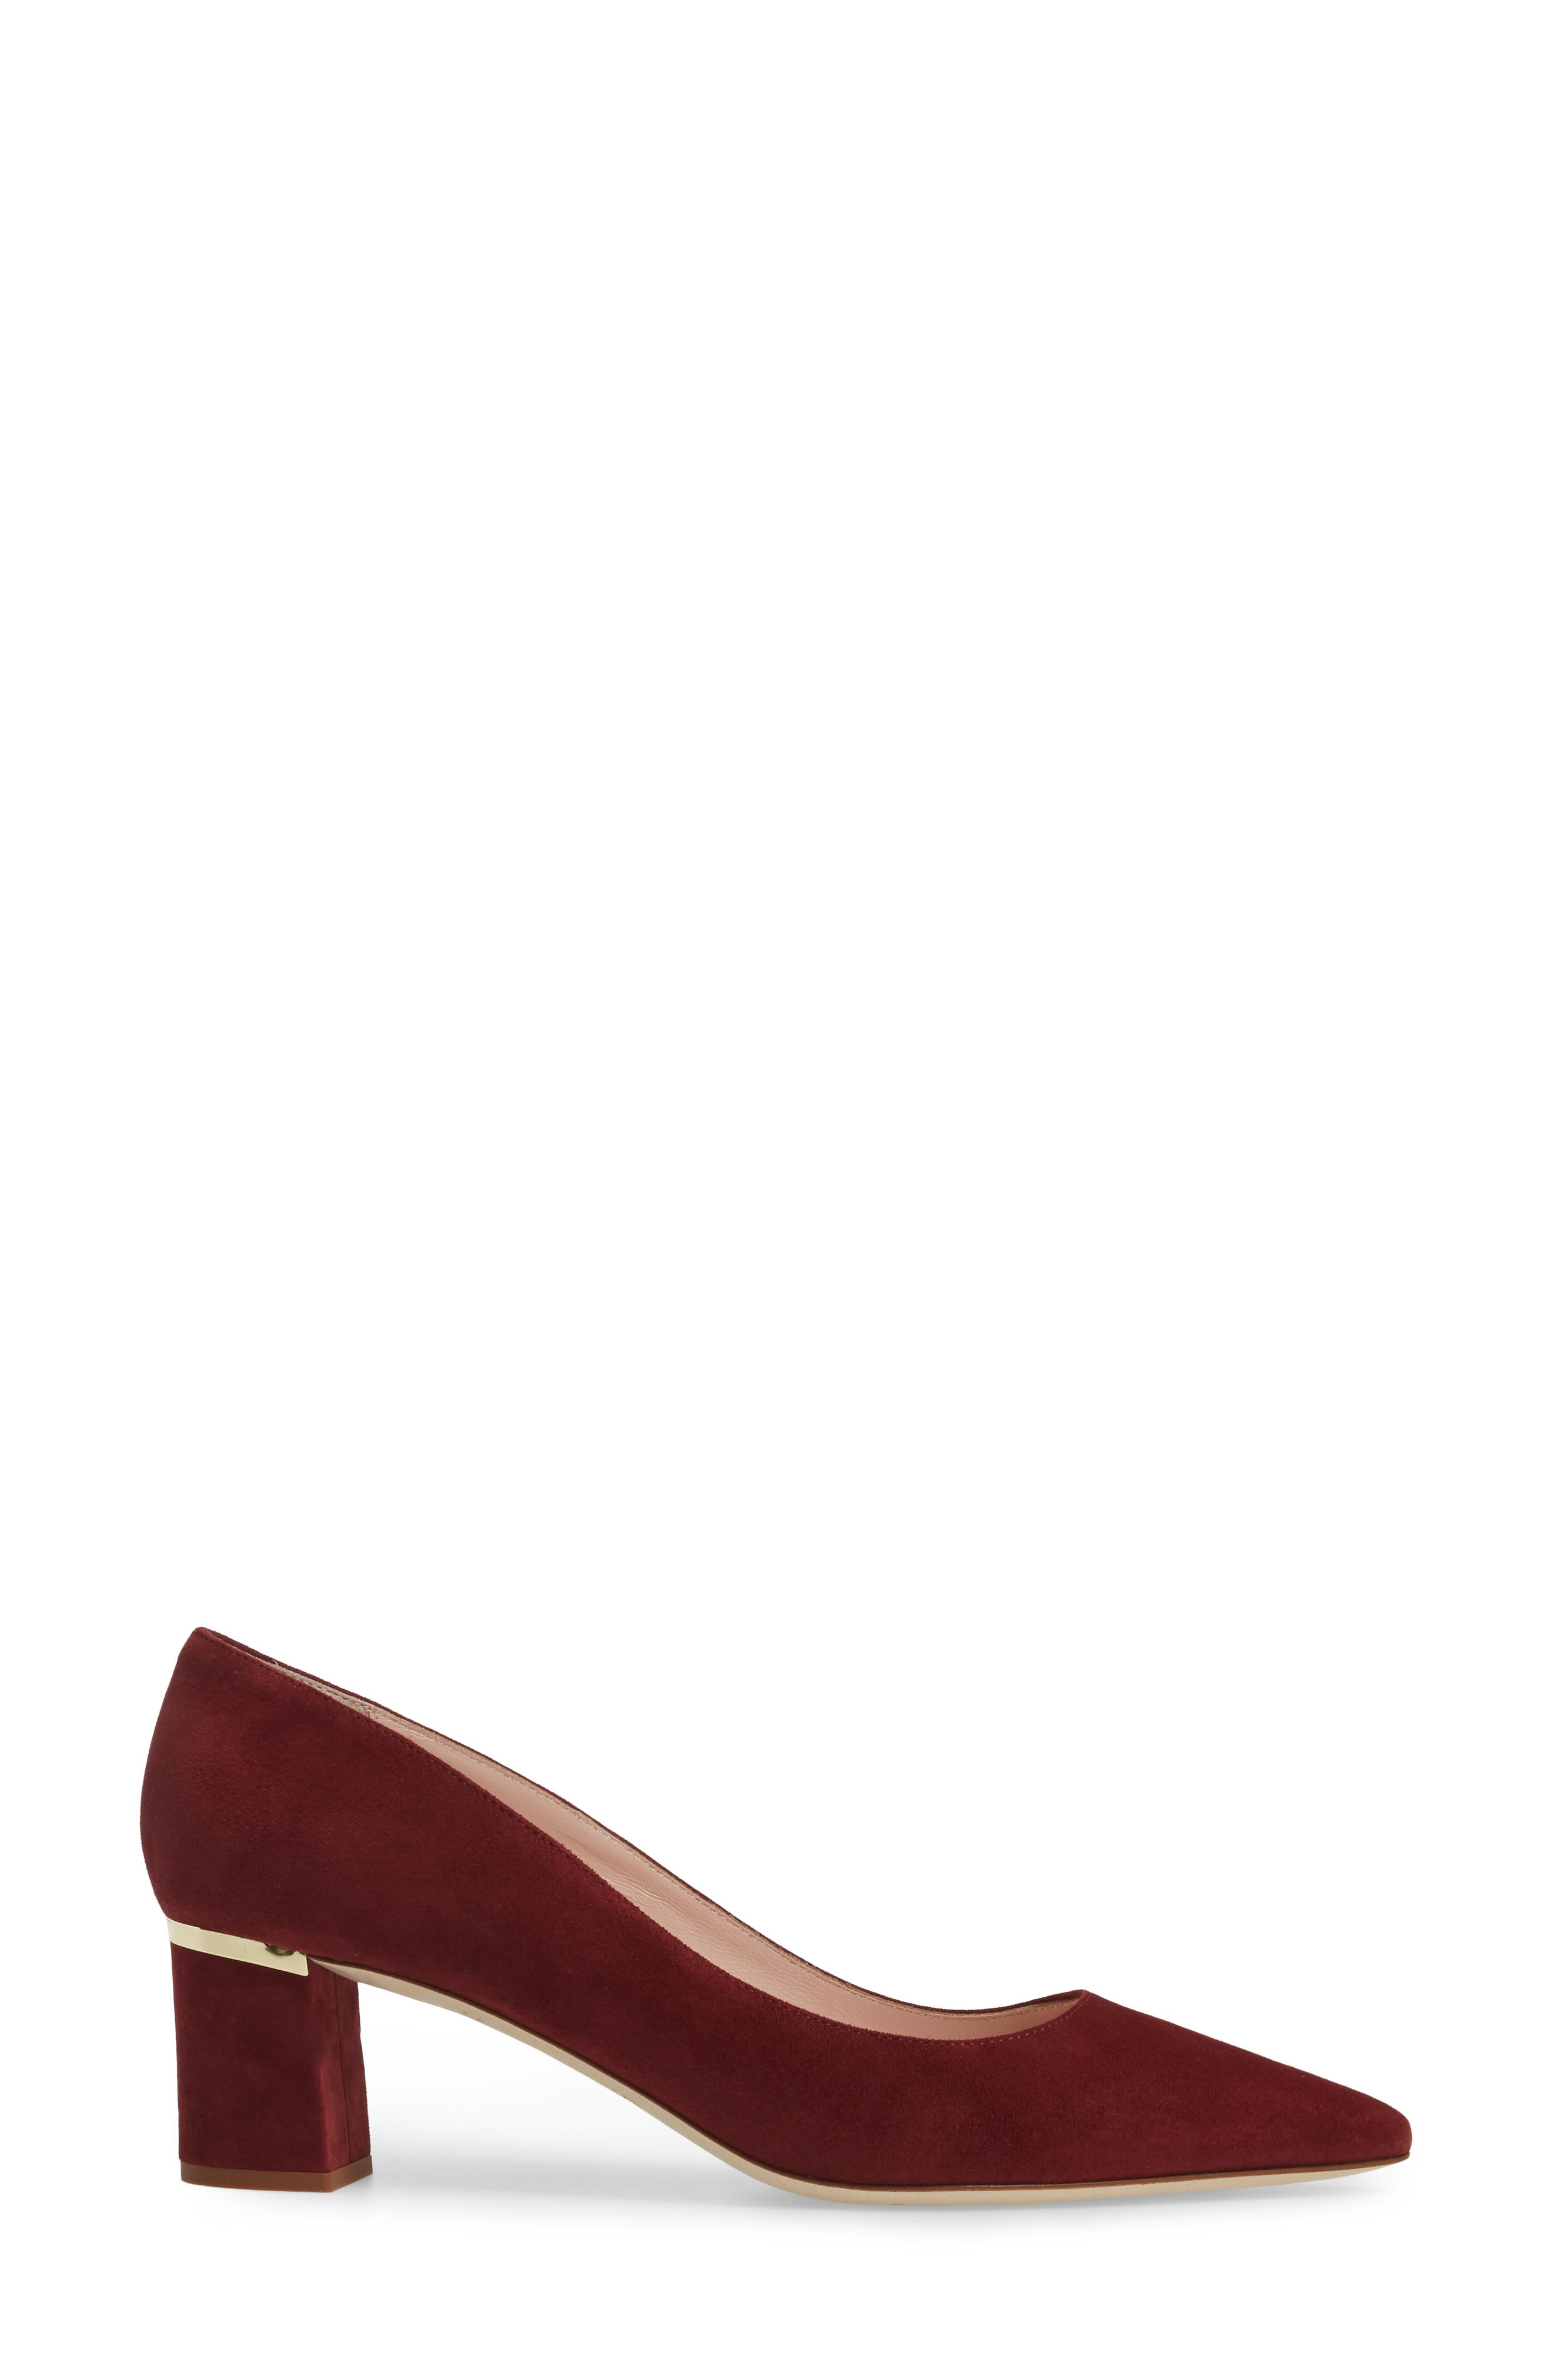 'milan too' pointy toe pump,                             Alternate thumbnail 3, color,                             620